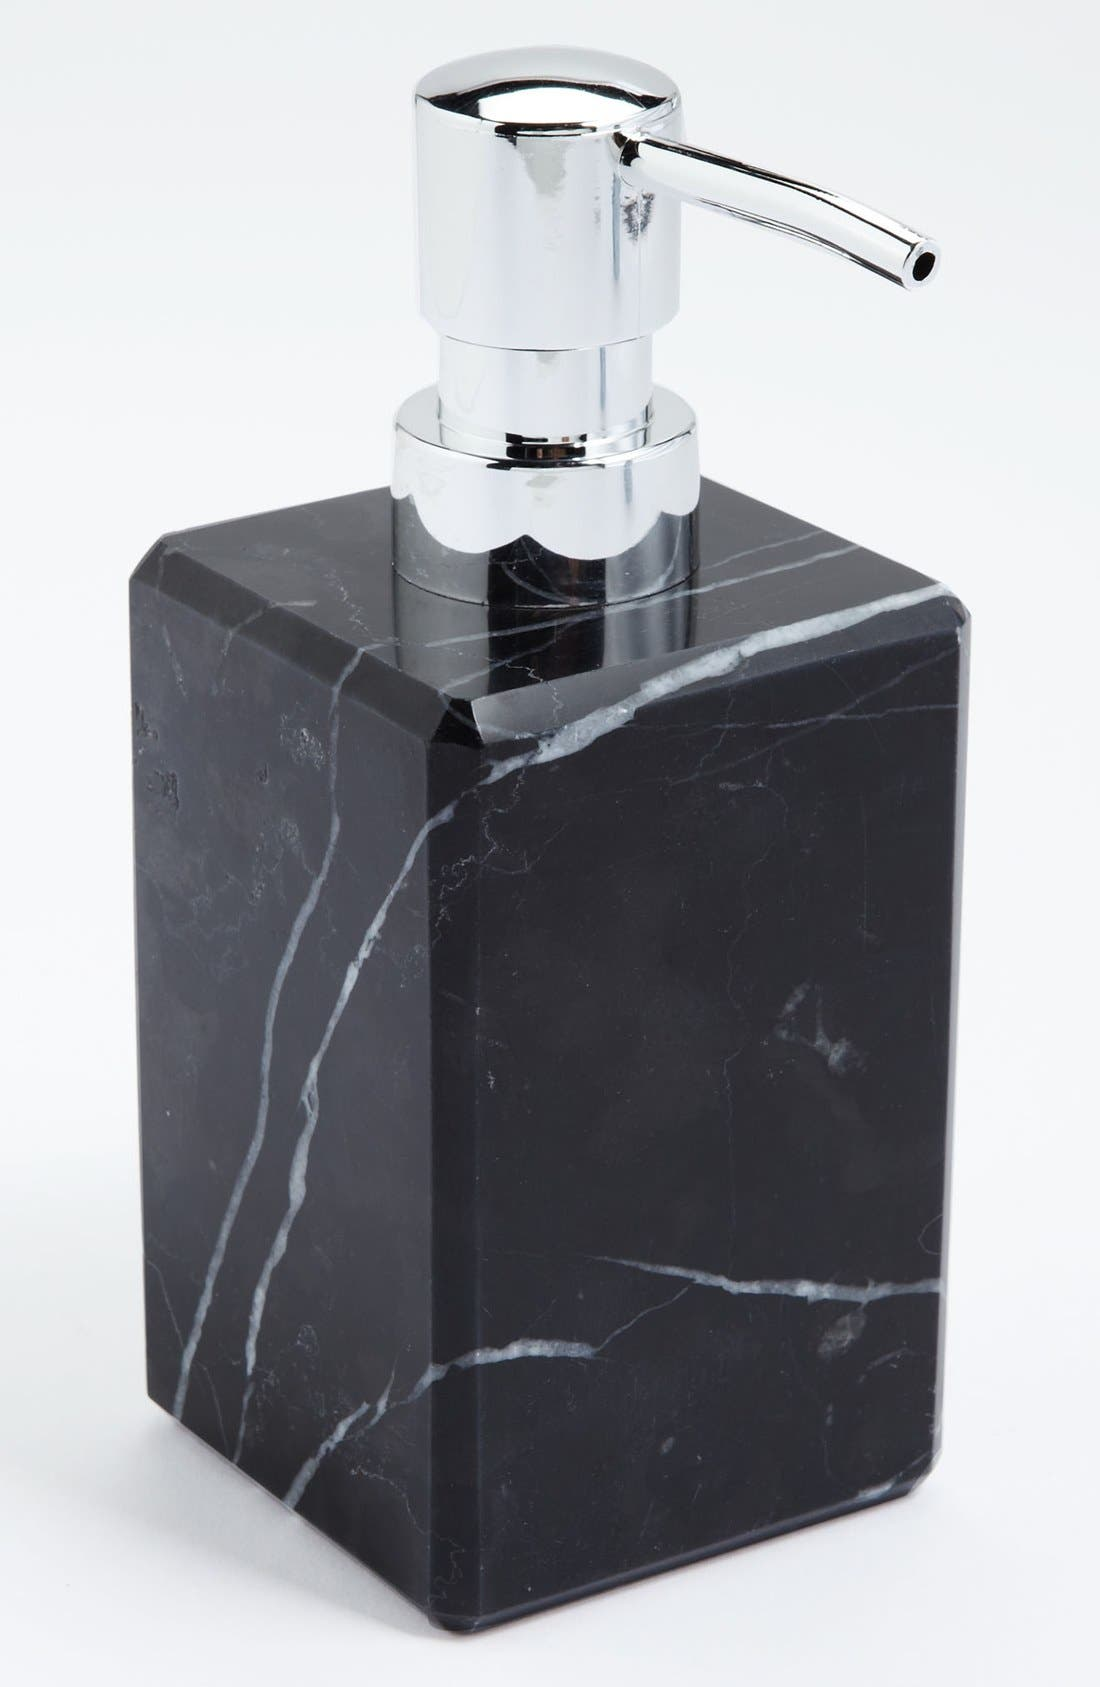 Waterworks Studio 'Luna' Black Marble Soap Dispenser (Online Only)